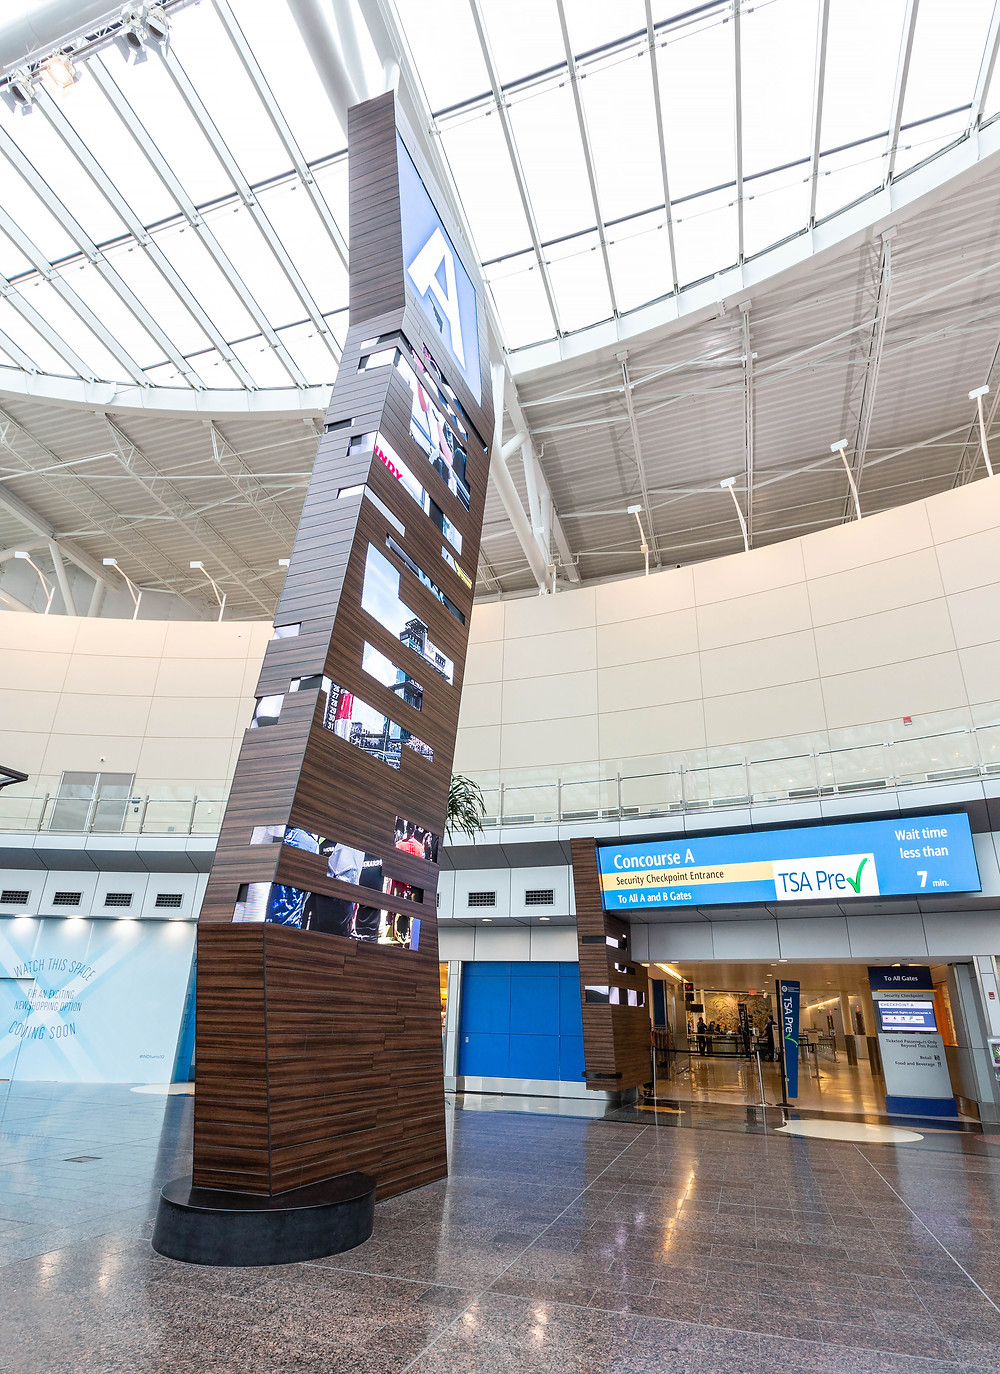 40-ft digital displays provide immediate and recognizable info about where the concourse travelers need are located.